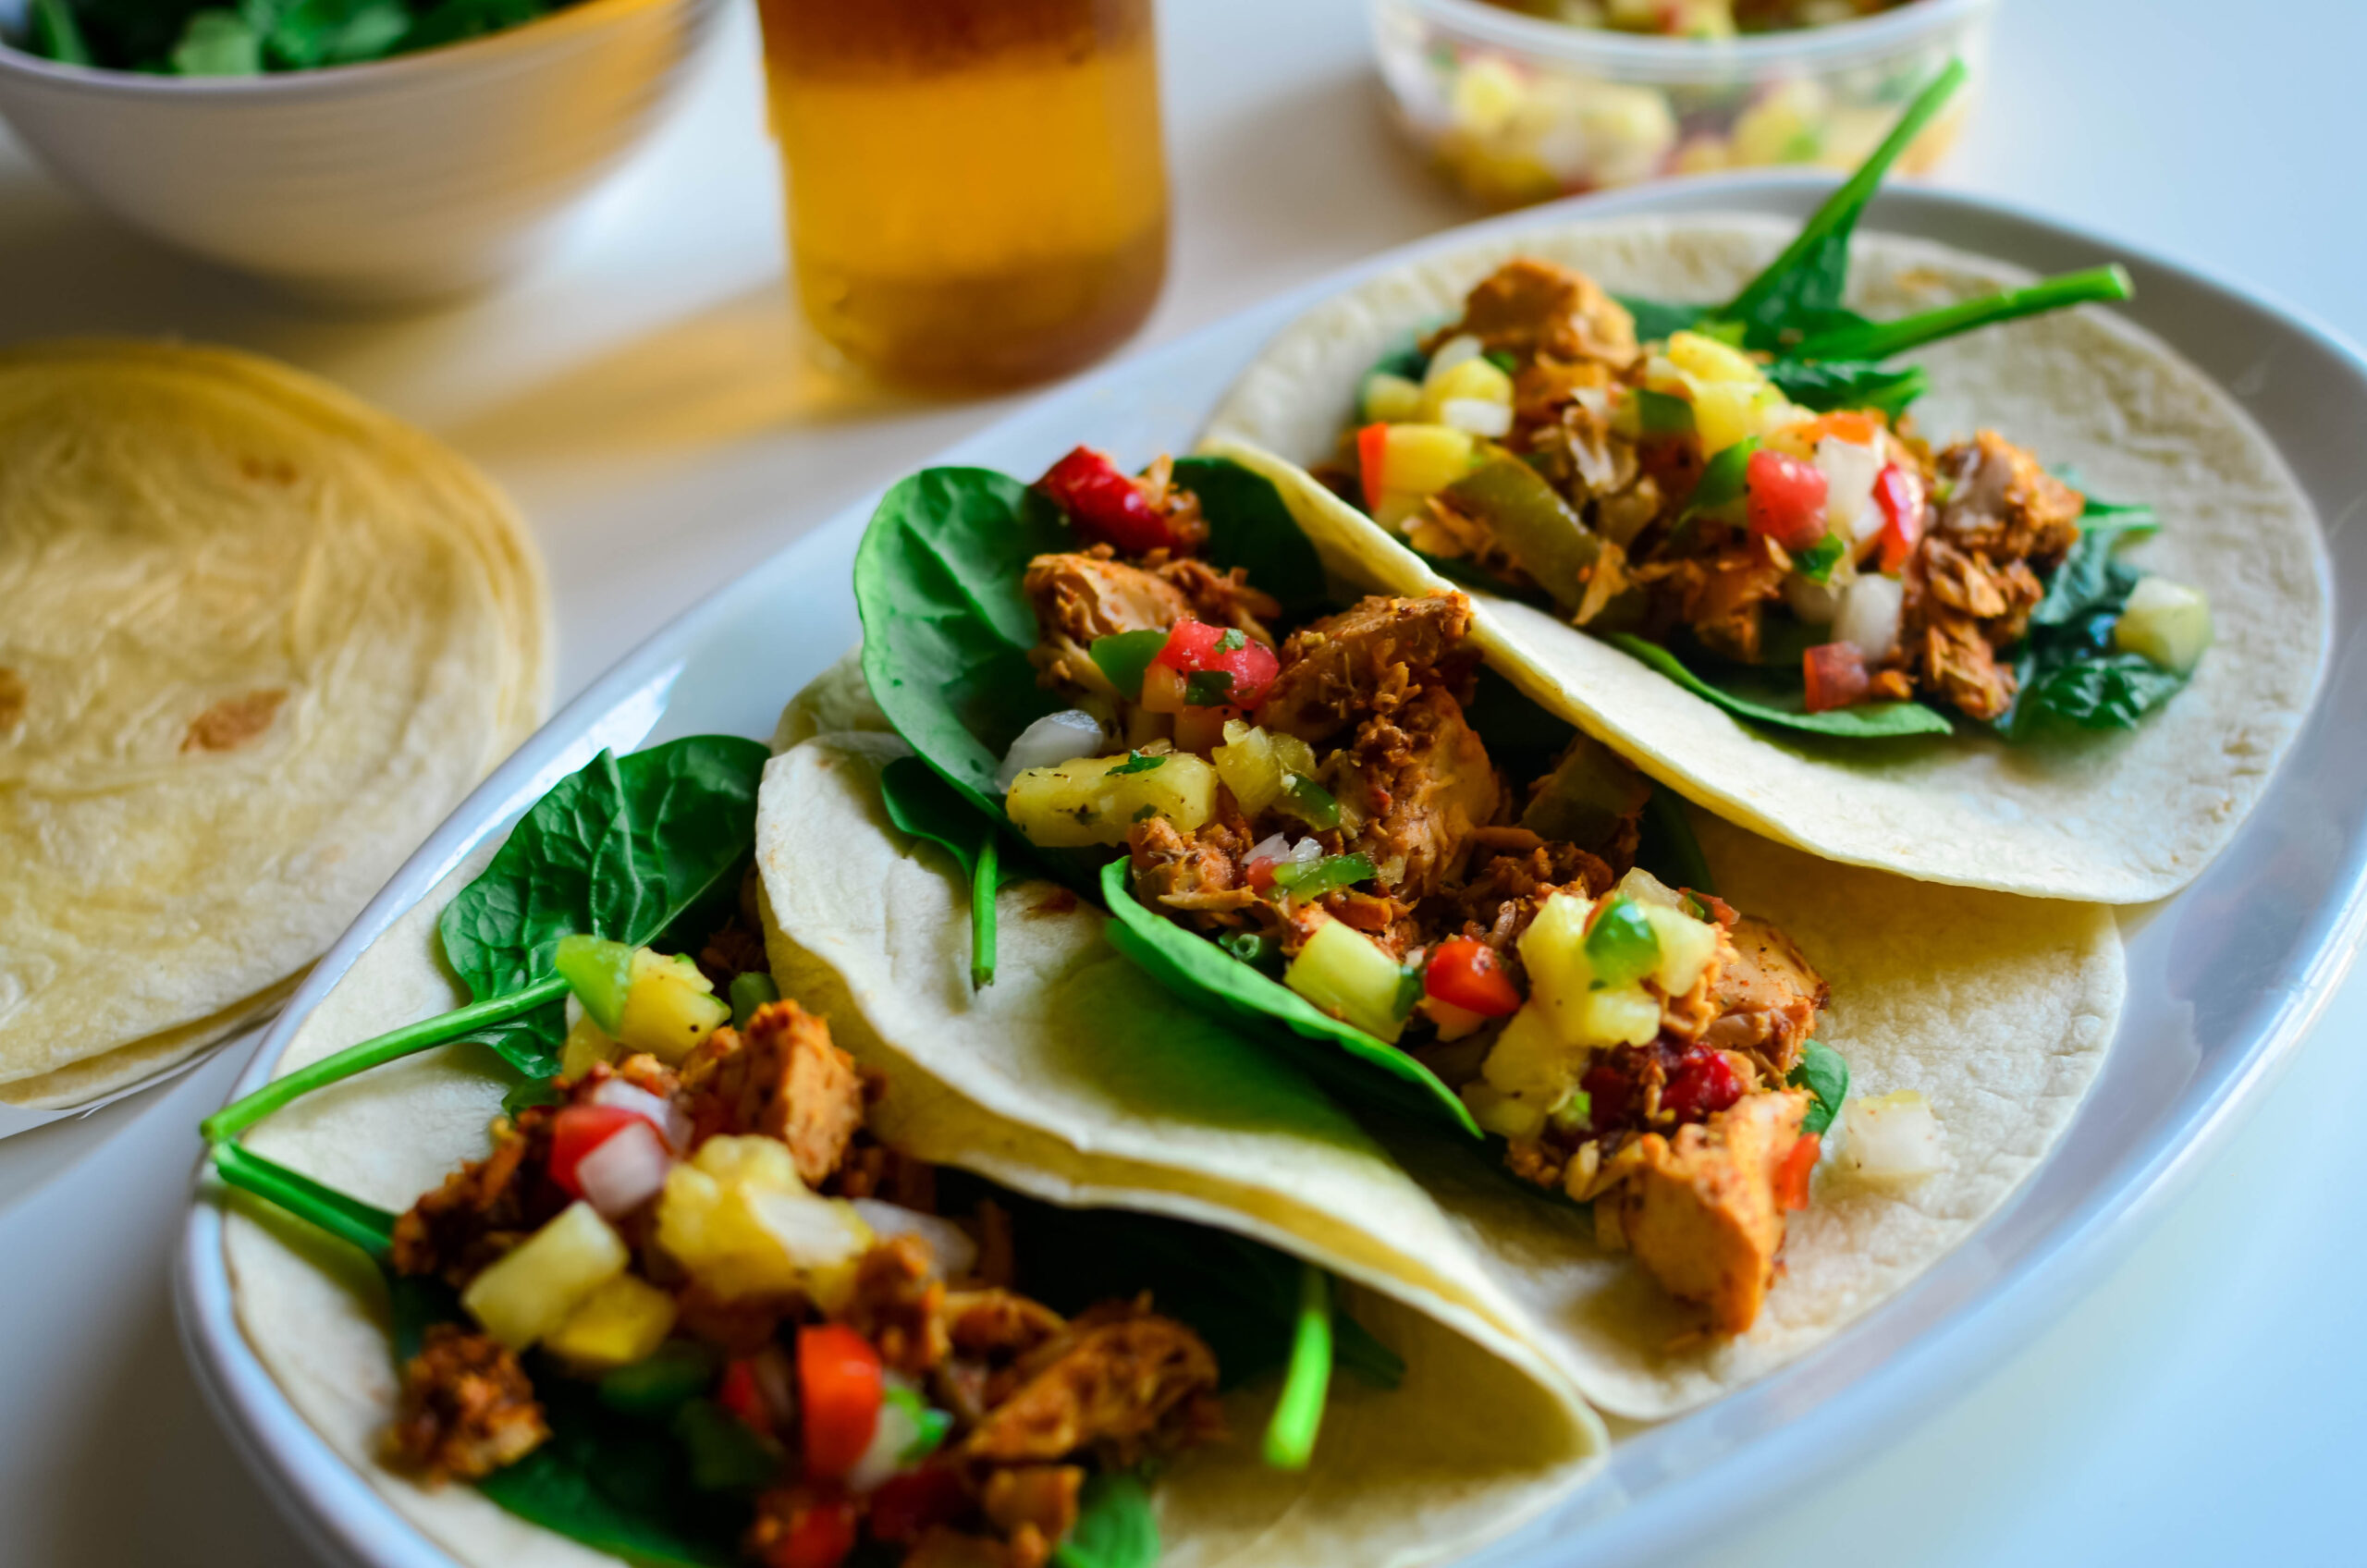 Salmon taco topped with Pineapple salsa